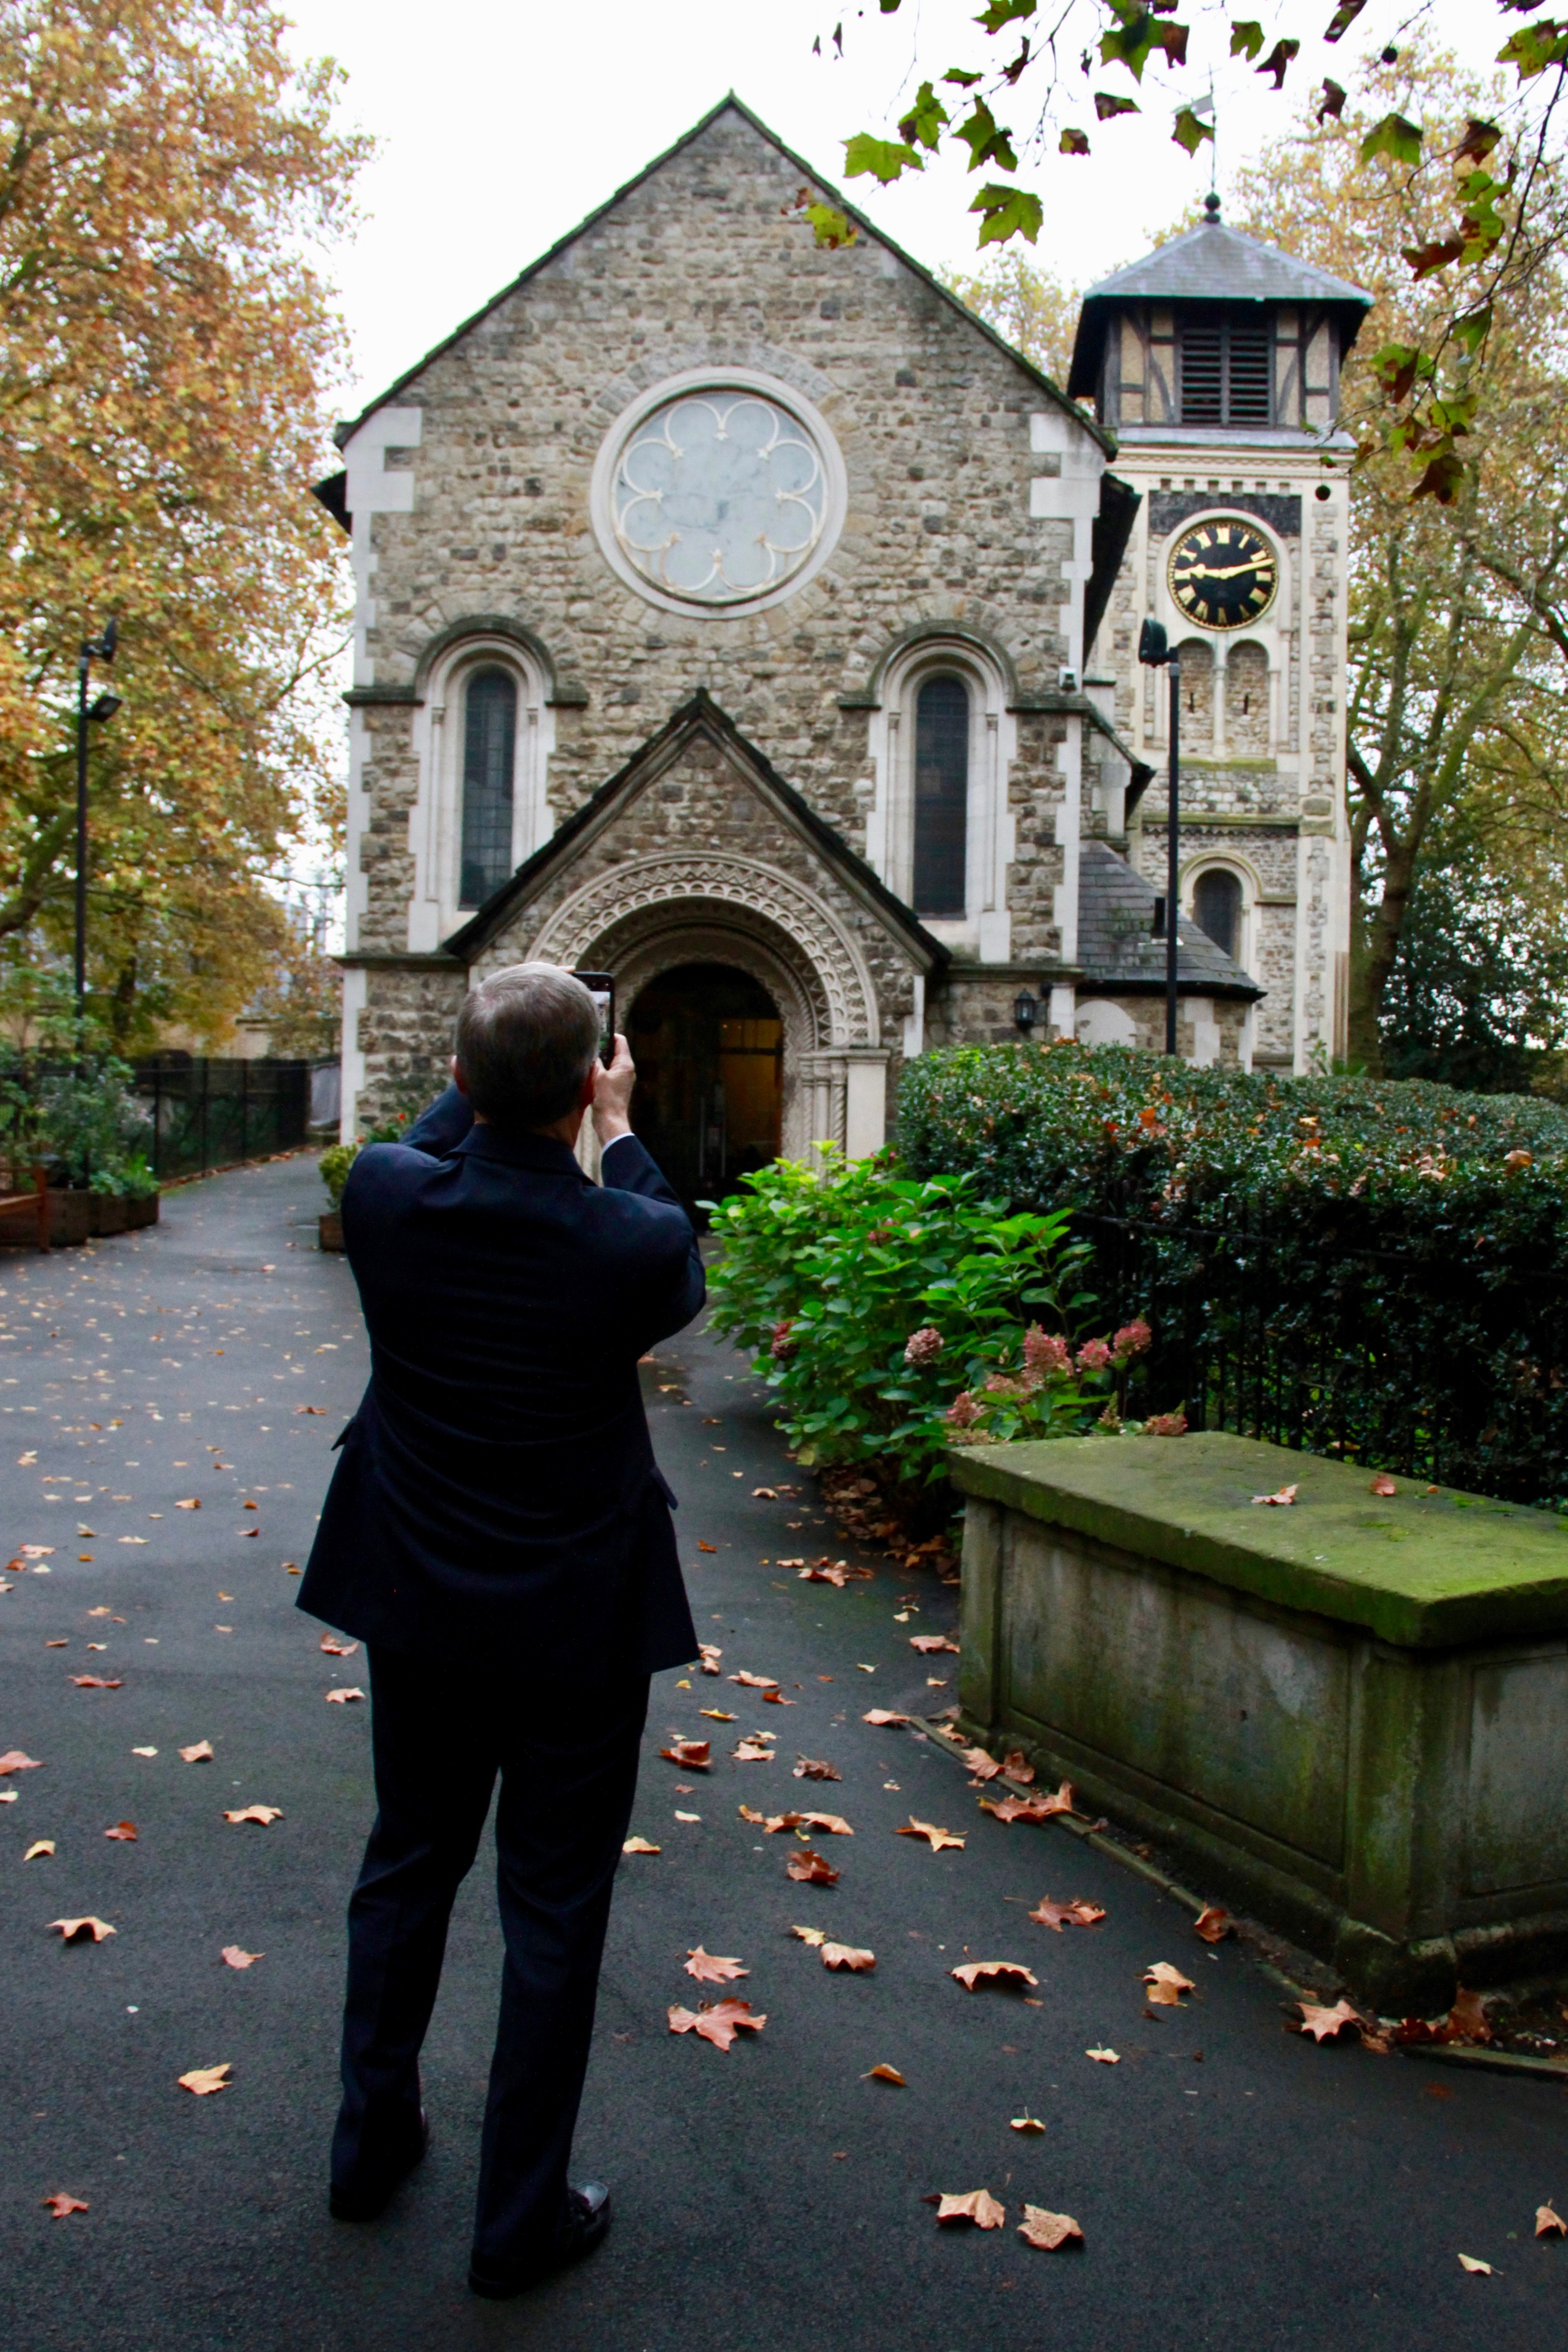 Elder David A. Bednar takes a photo of the outside of St. Pancras Old Church in London on Oct. 25, 2019. Elder Bednar's great-great-great-grandparents, Luke Syphus and Christiana Long, were married there on Dec. 25, 1851.